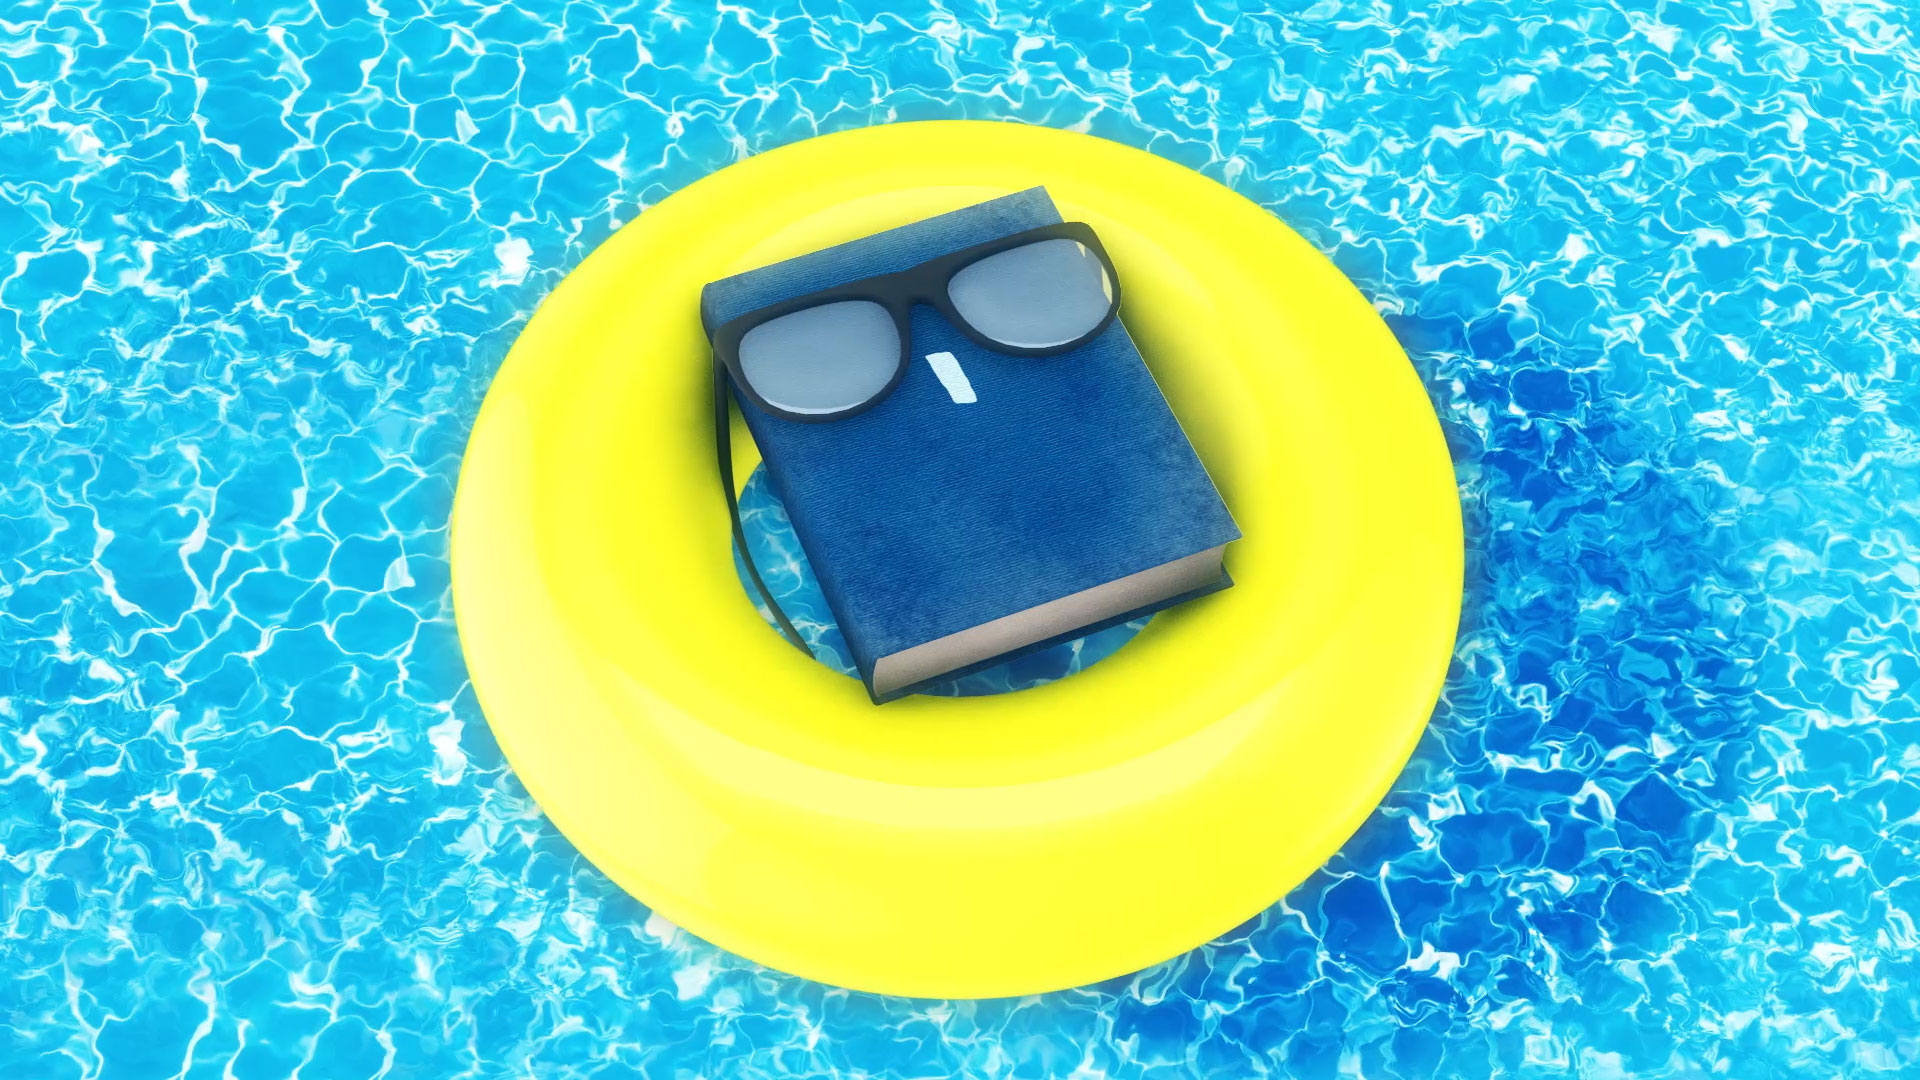 The 23 best health and science books to read this summer - STAT